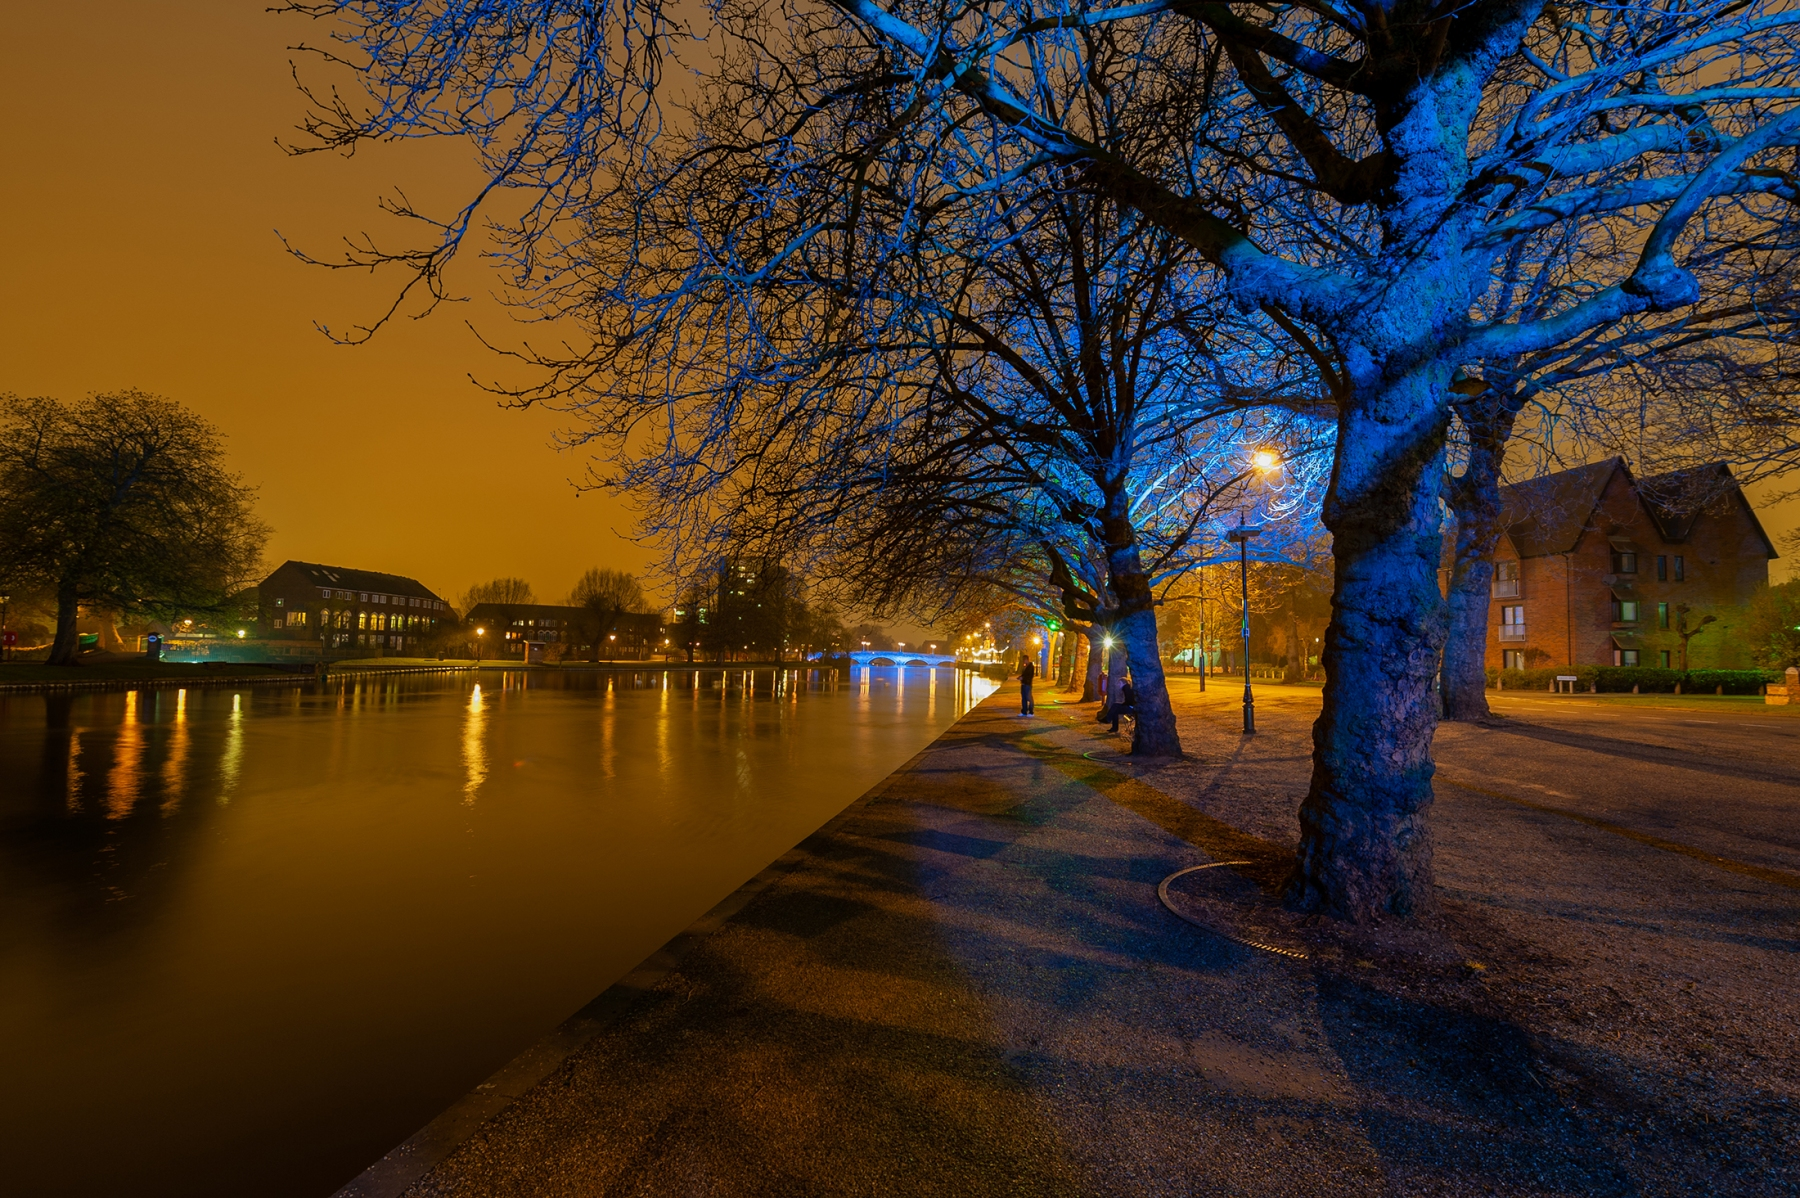 River Great Ouse, Bedford at night